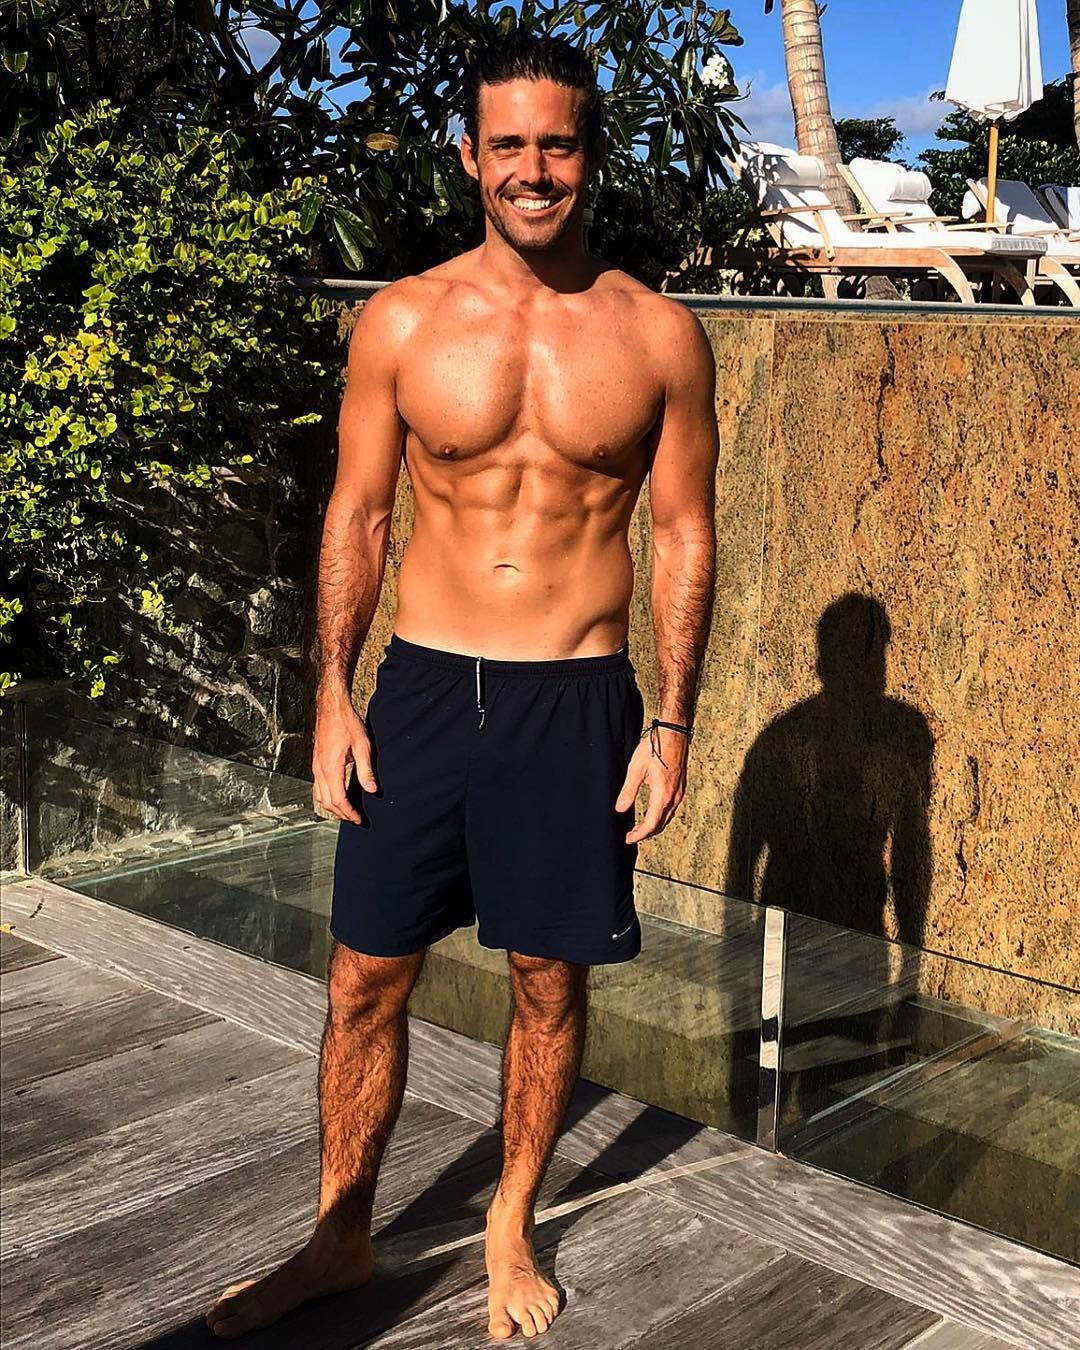 Image may contain:Made in Chelsea cast are actually from, Made in Chelsea, cast, place of birth, from, Spencer Matthews, Footwear, Man, Person, Human, Shorts, Clothing, Apparel